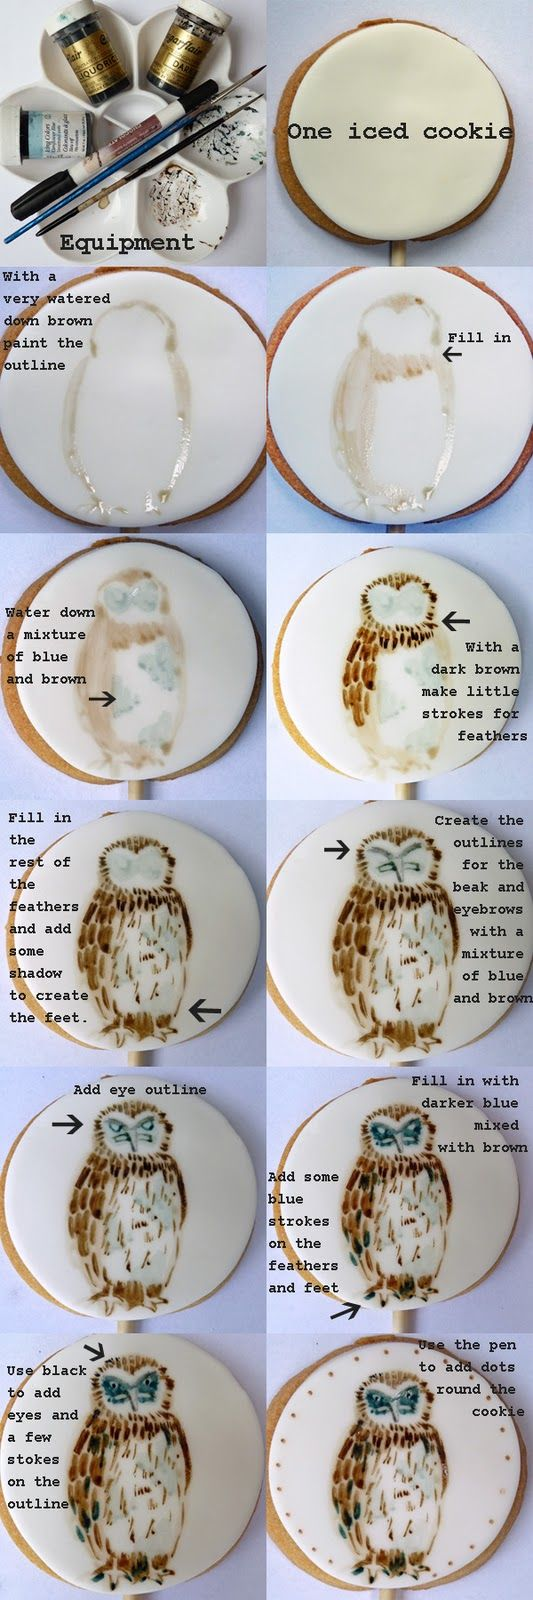 how to paint a cookie with an owl...Ain't nobody got time for that.